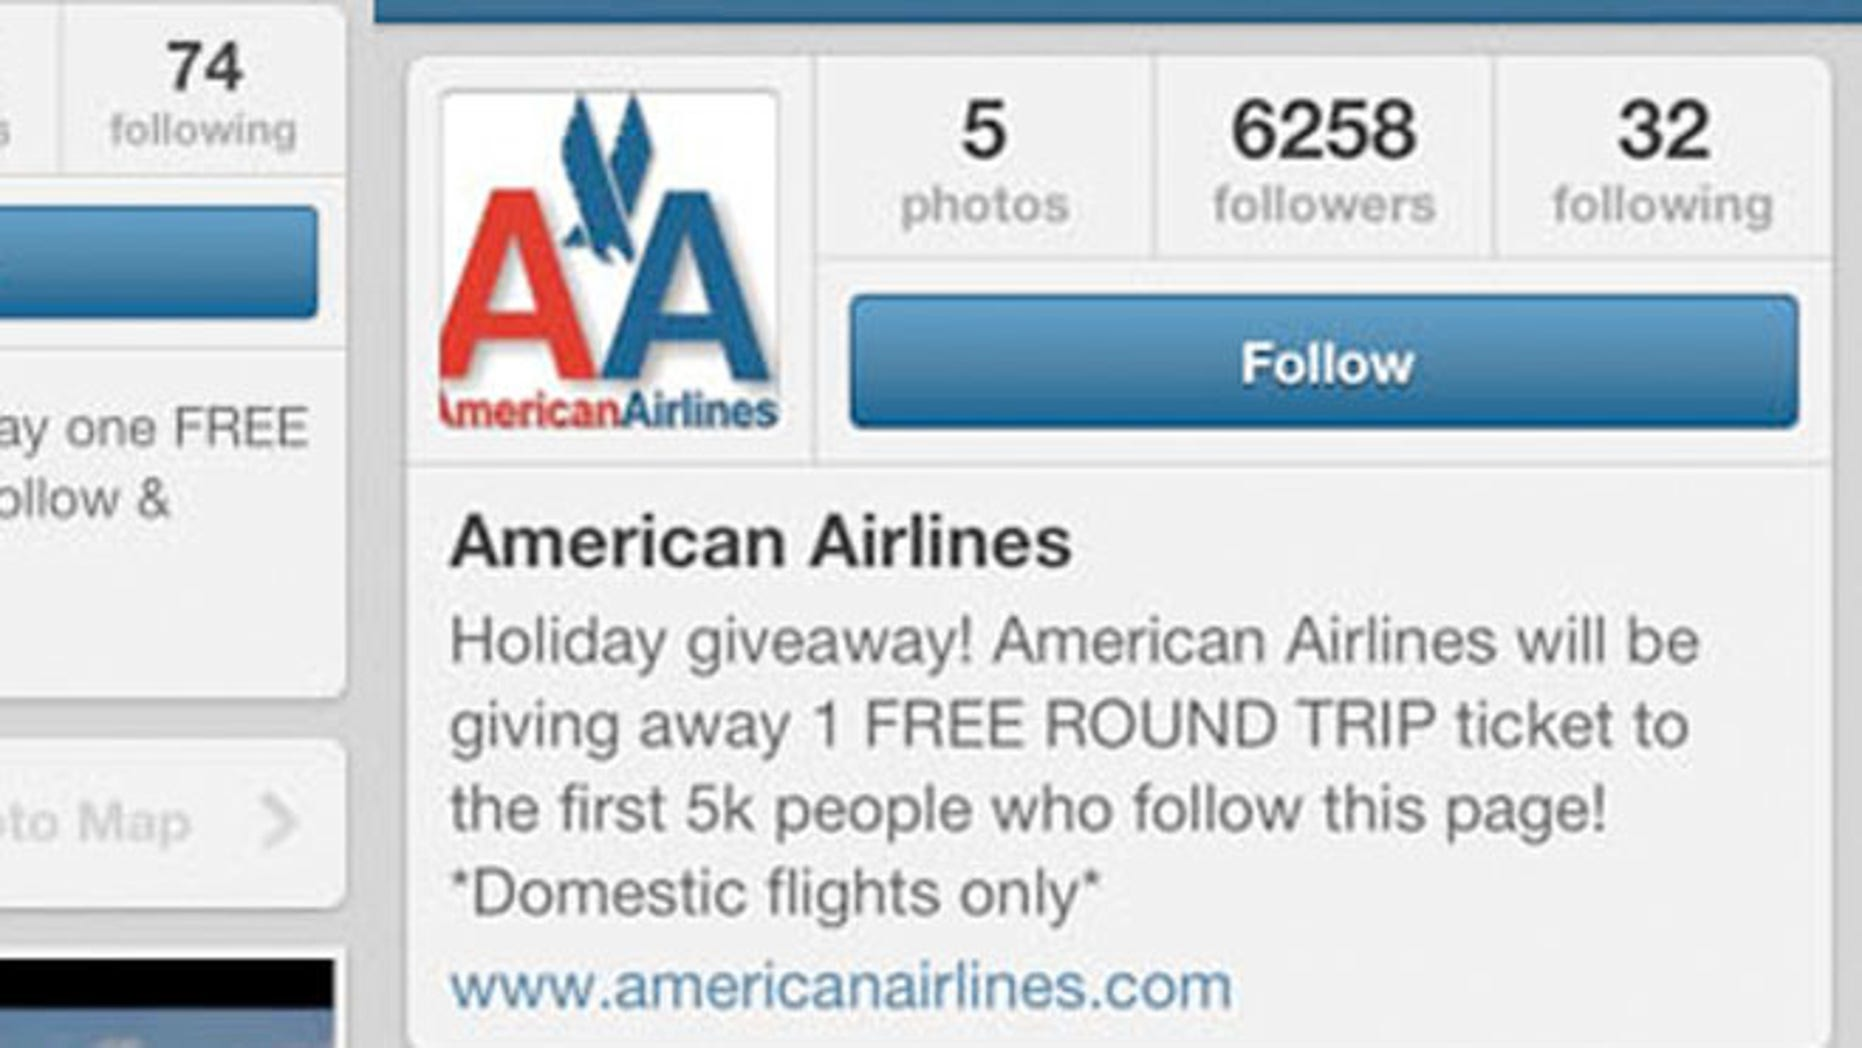 This fake American Airlines Instagram site had over 6,000 followers after it promised a free round-trip flight to the first 5,000 followers.